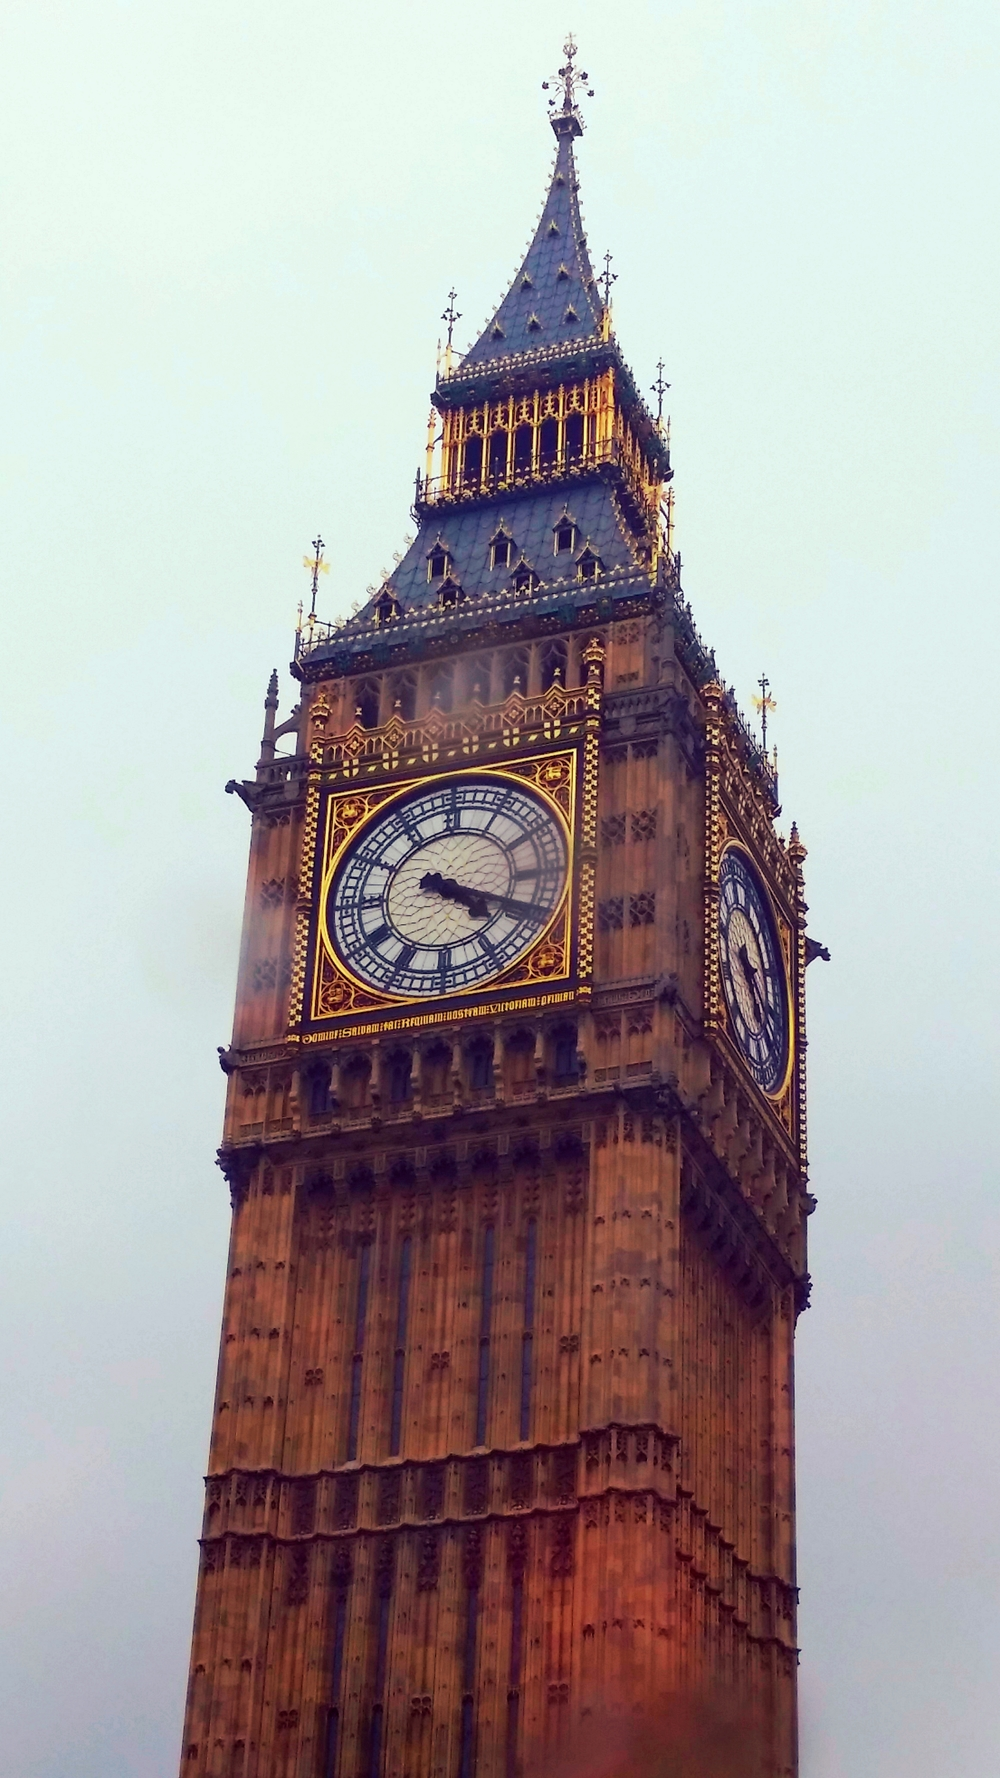 The Elizabeth Clock Tower/'Big Ben'